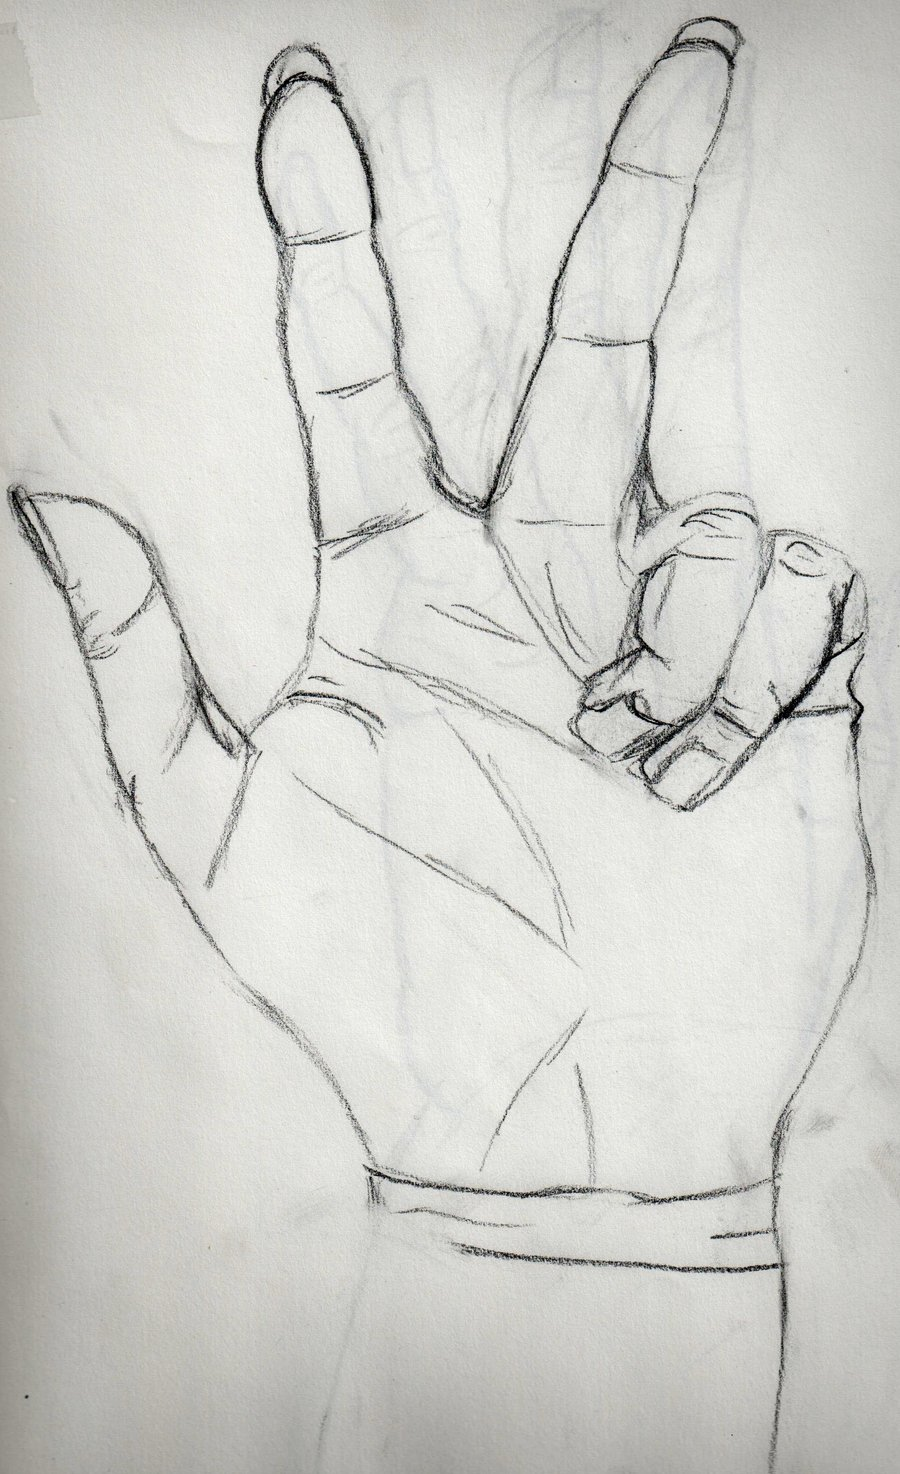 Drawn peace sign sketch Hand DeviantArt Sketch Respect by